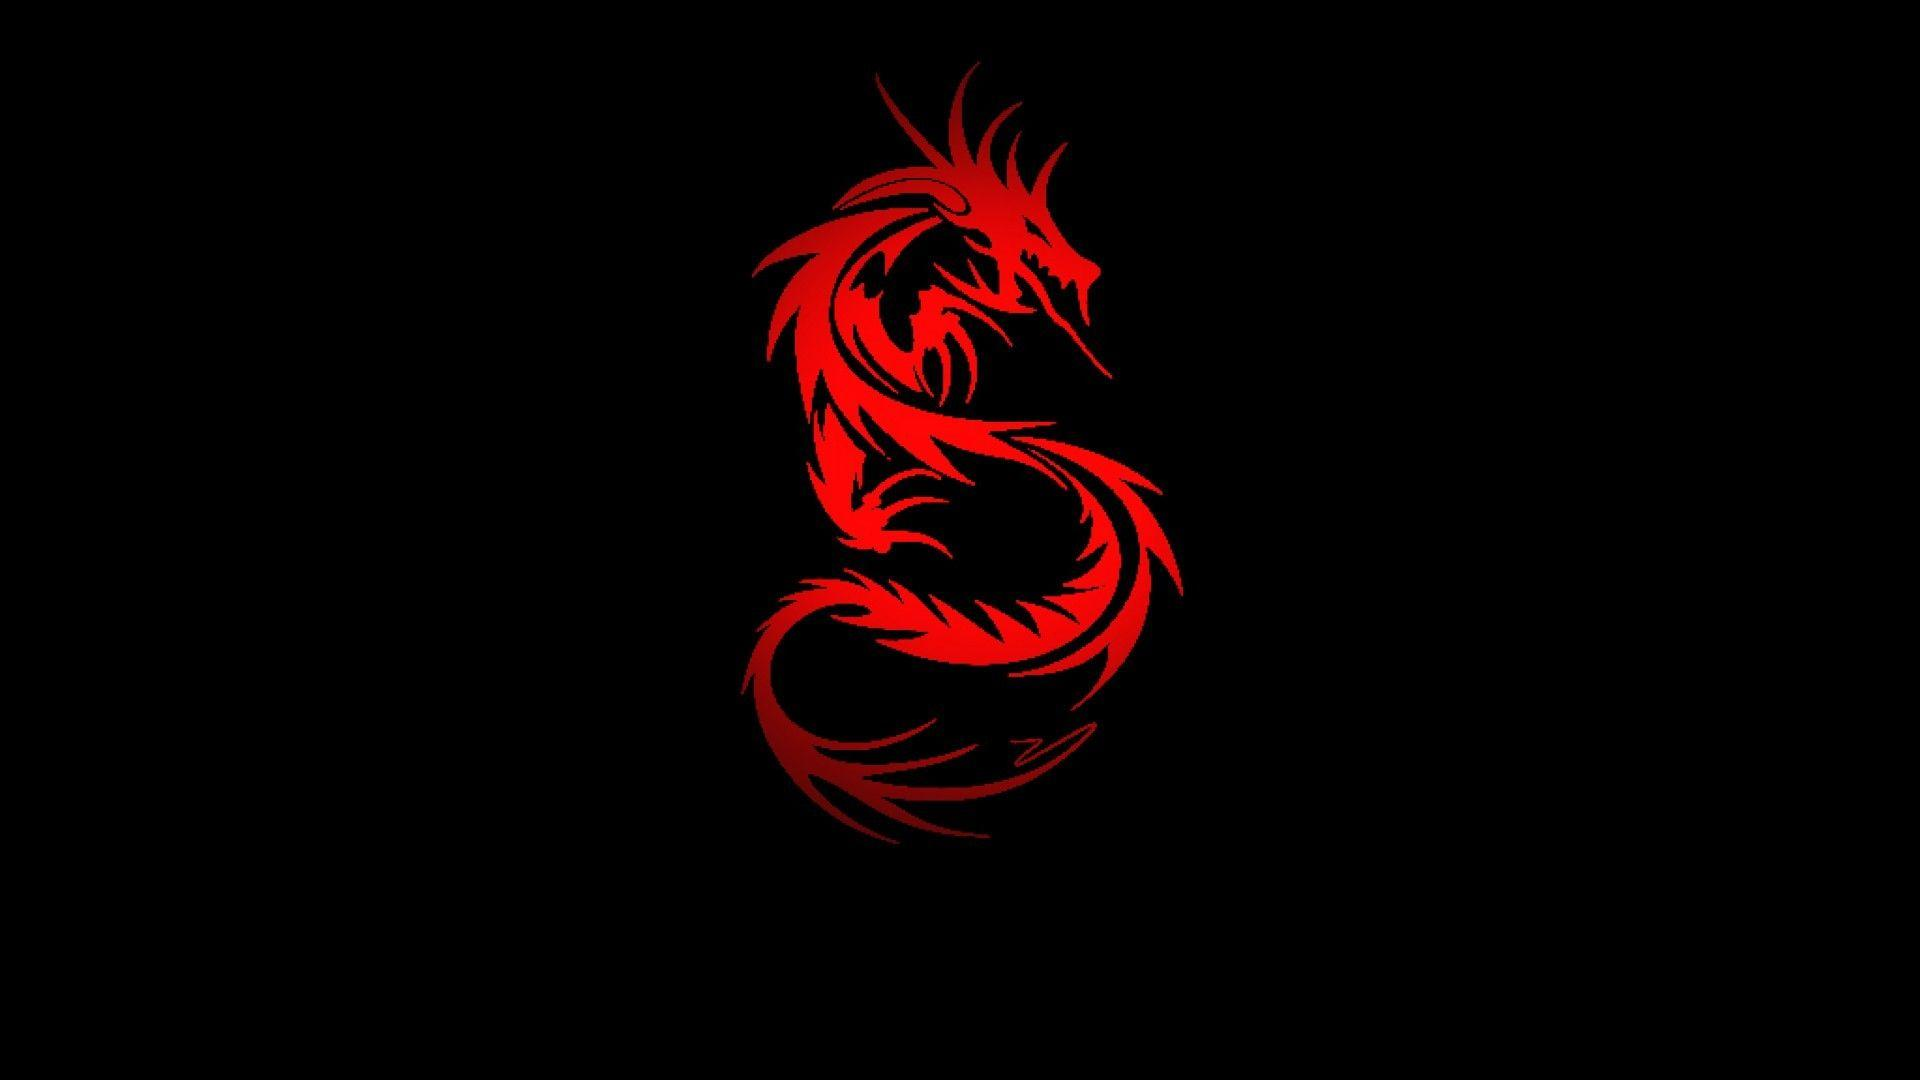 Dragon wallpapers HD 1080p ·① Download free amazing backgrounds for